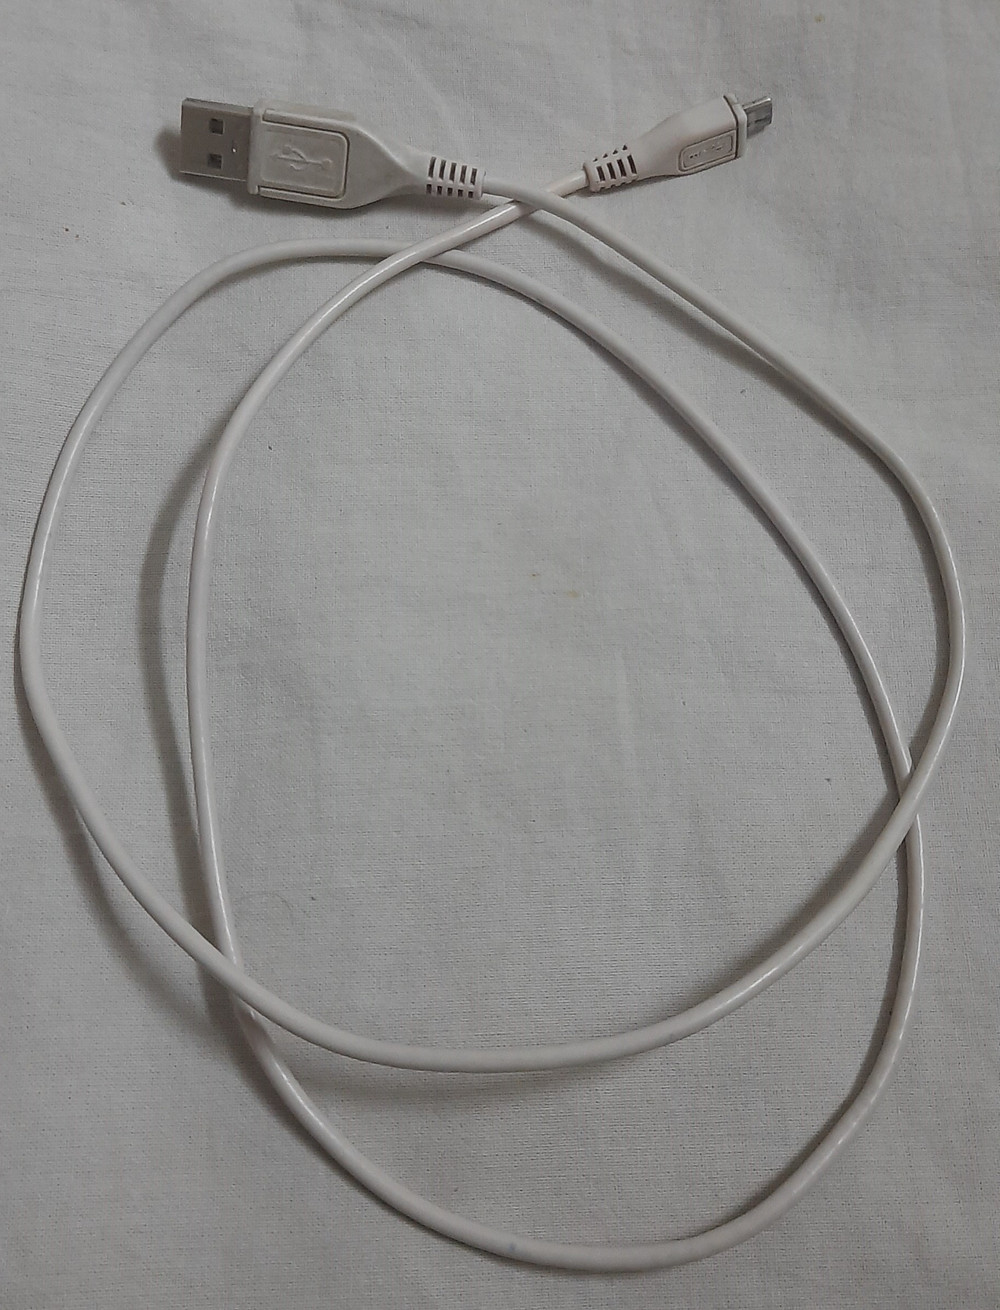 USB cable for power supply